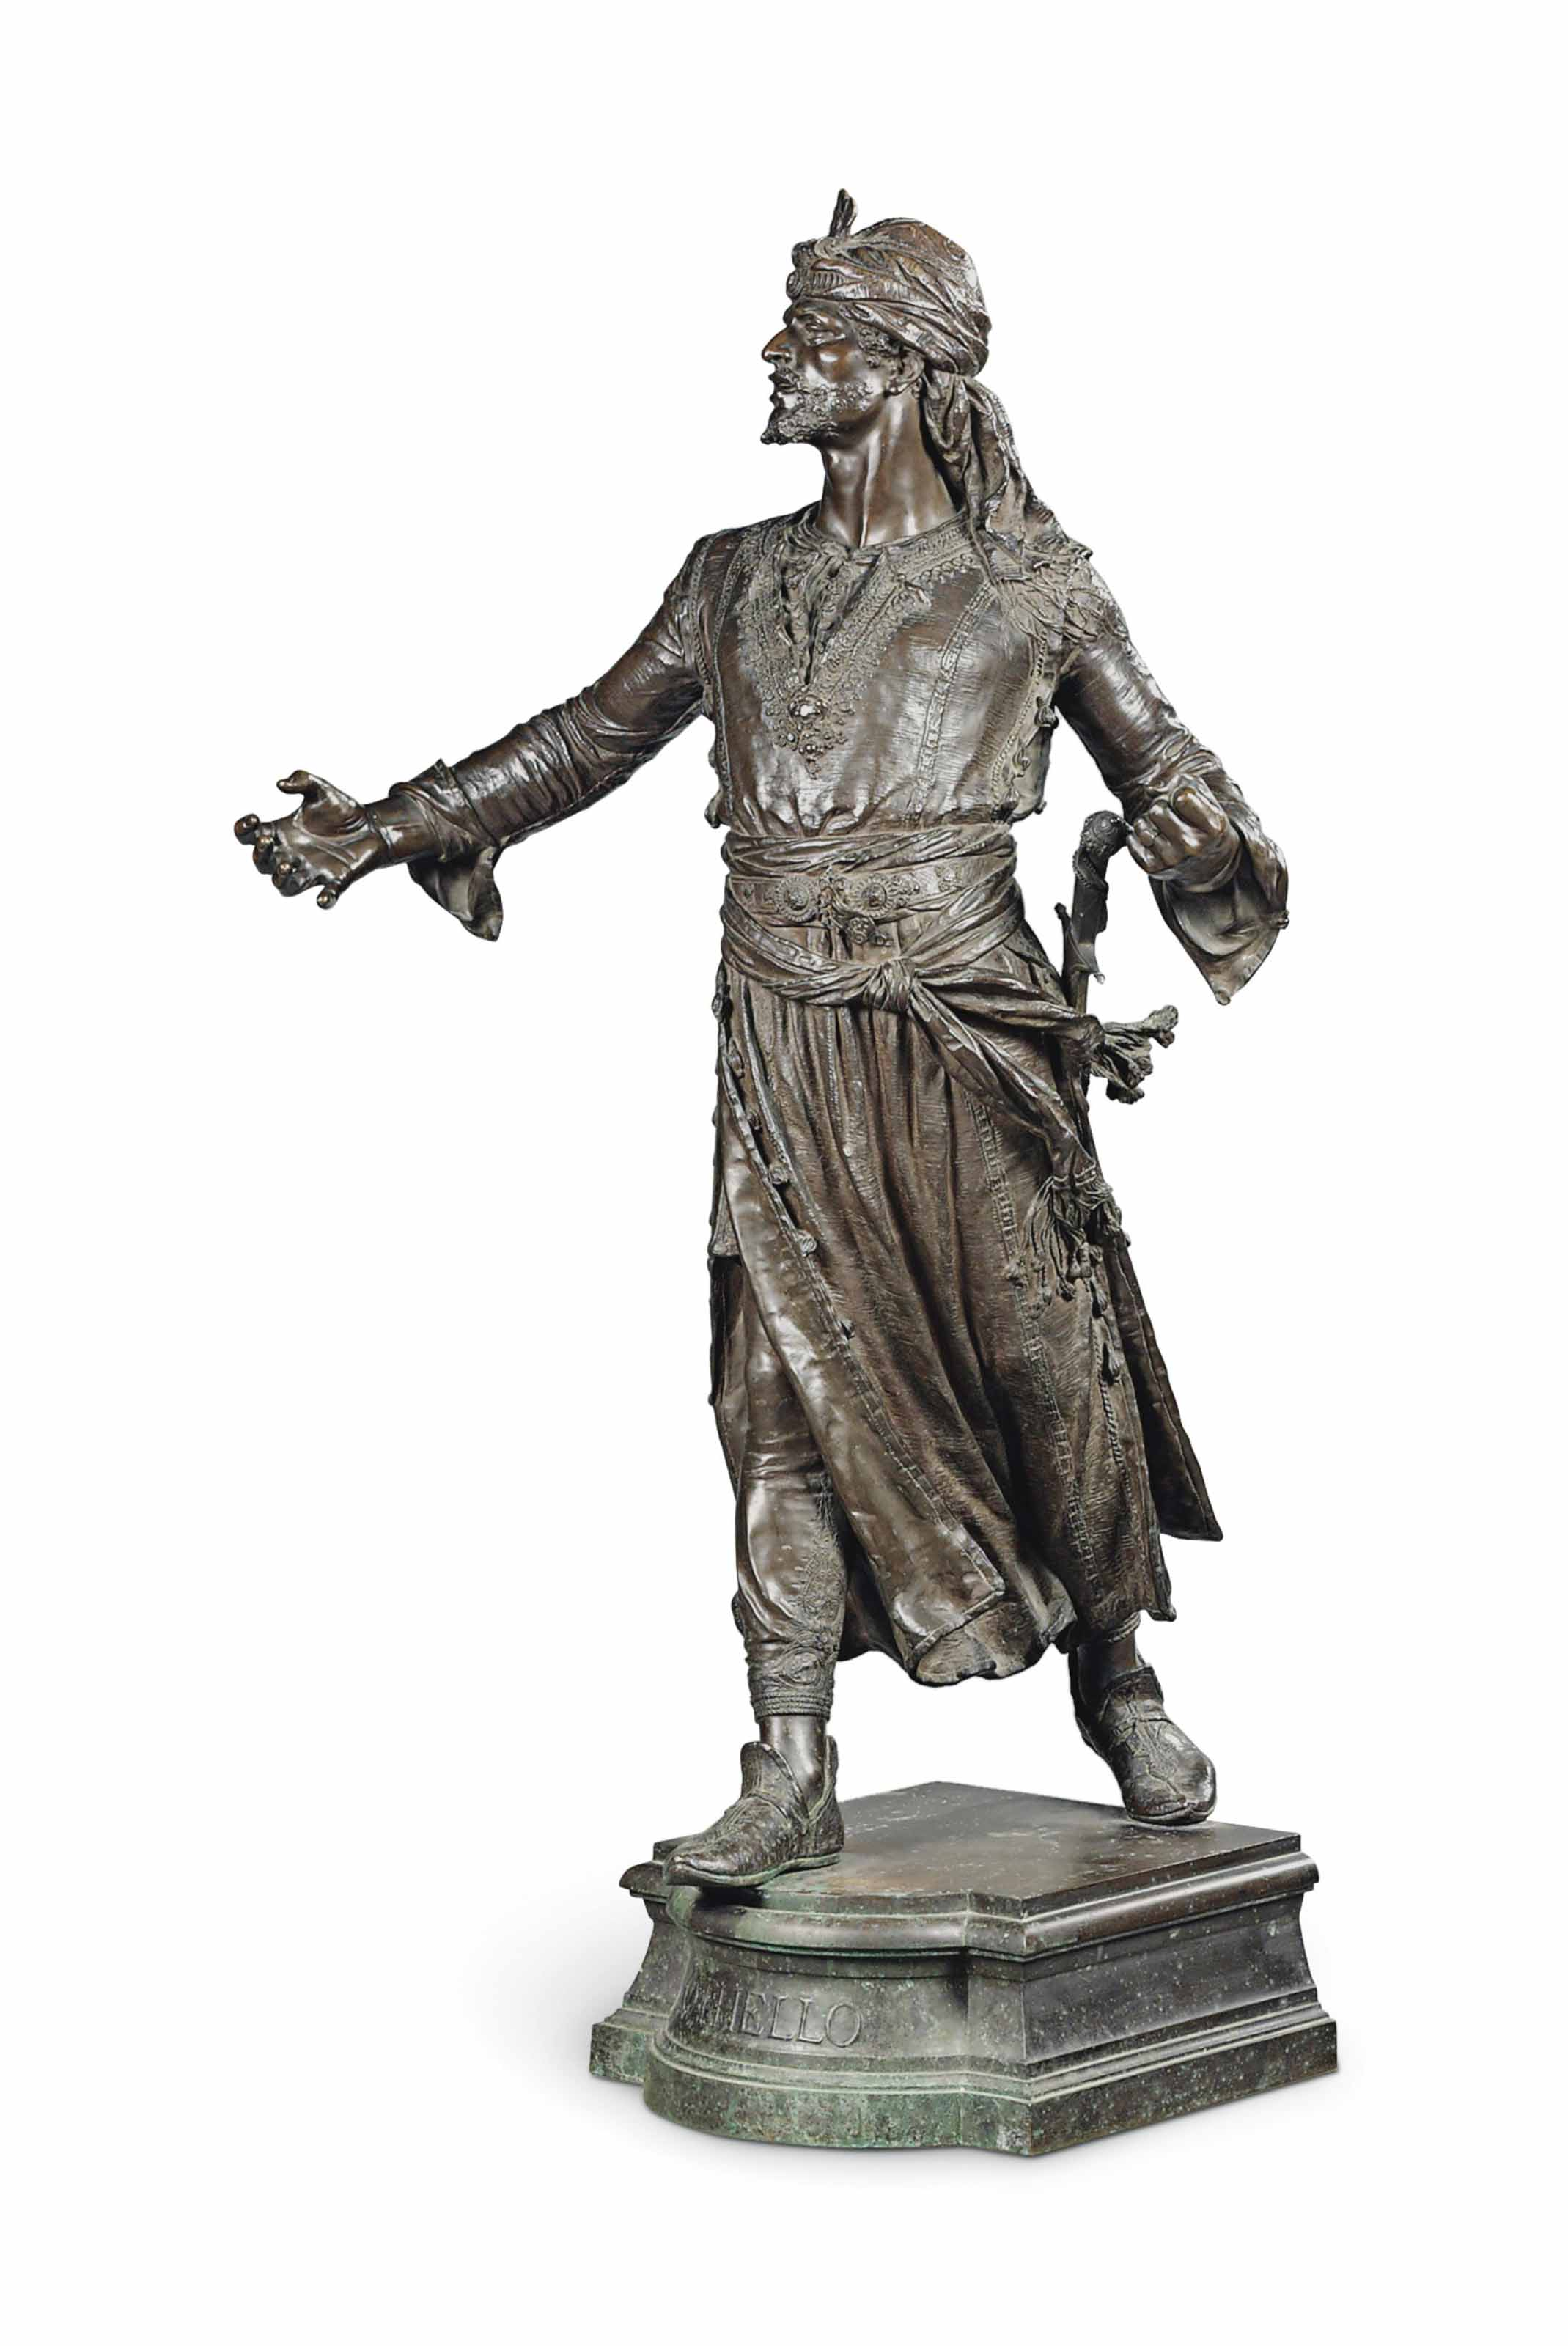 A FRENCH GILT AND PATINATED-BRONZE FIGURE, ENTITLED 'OTHELLO'